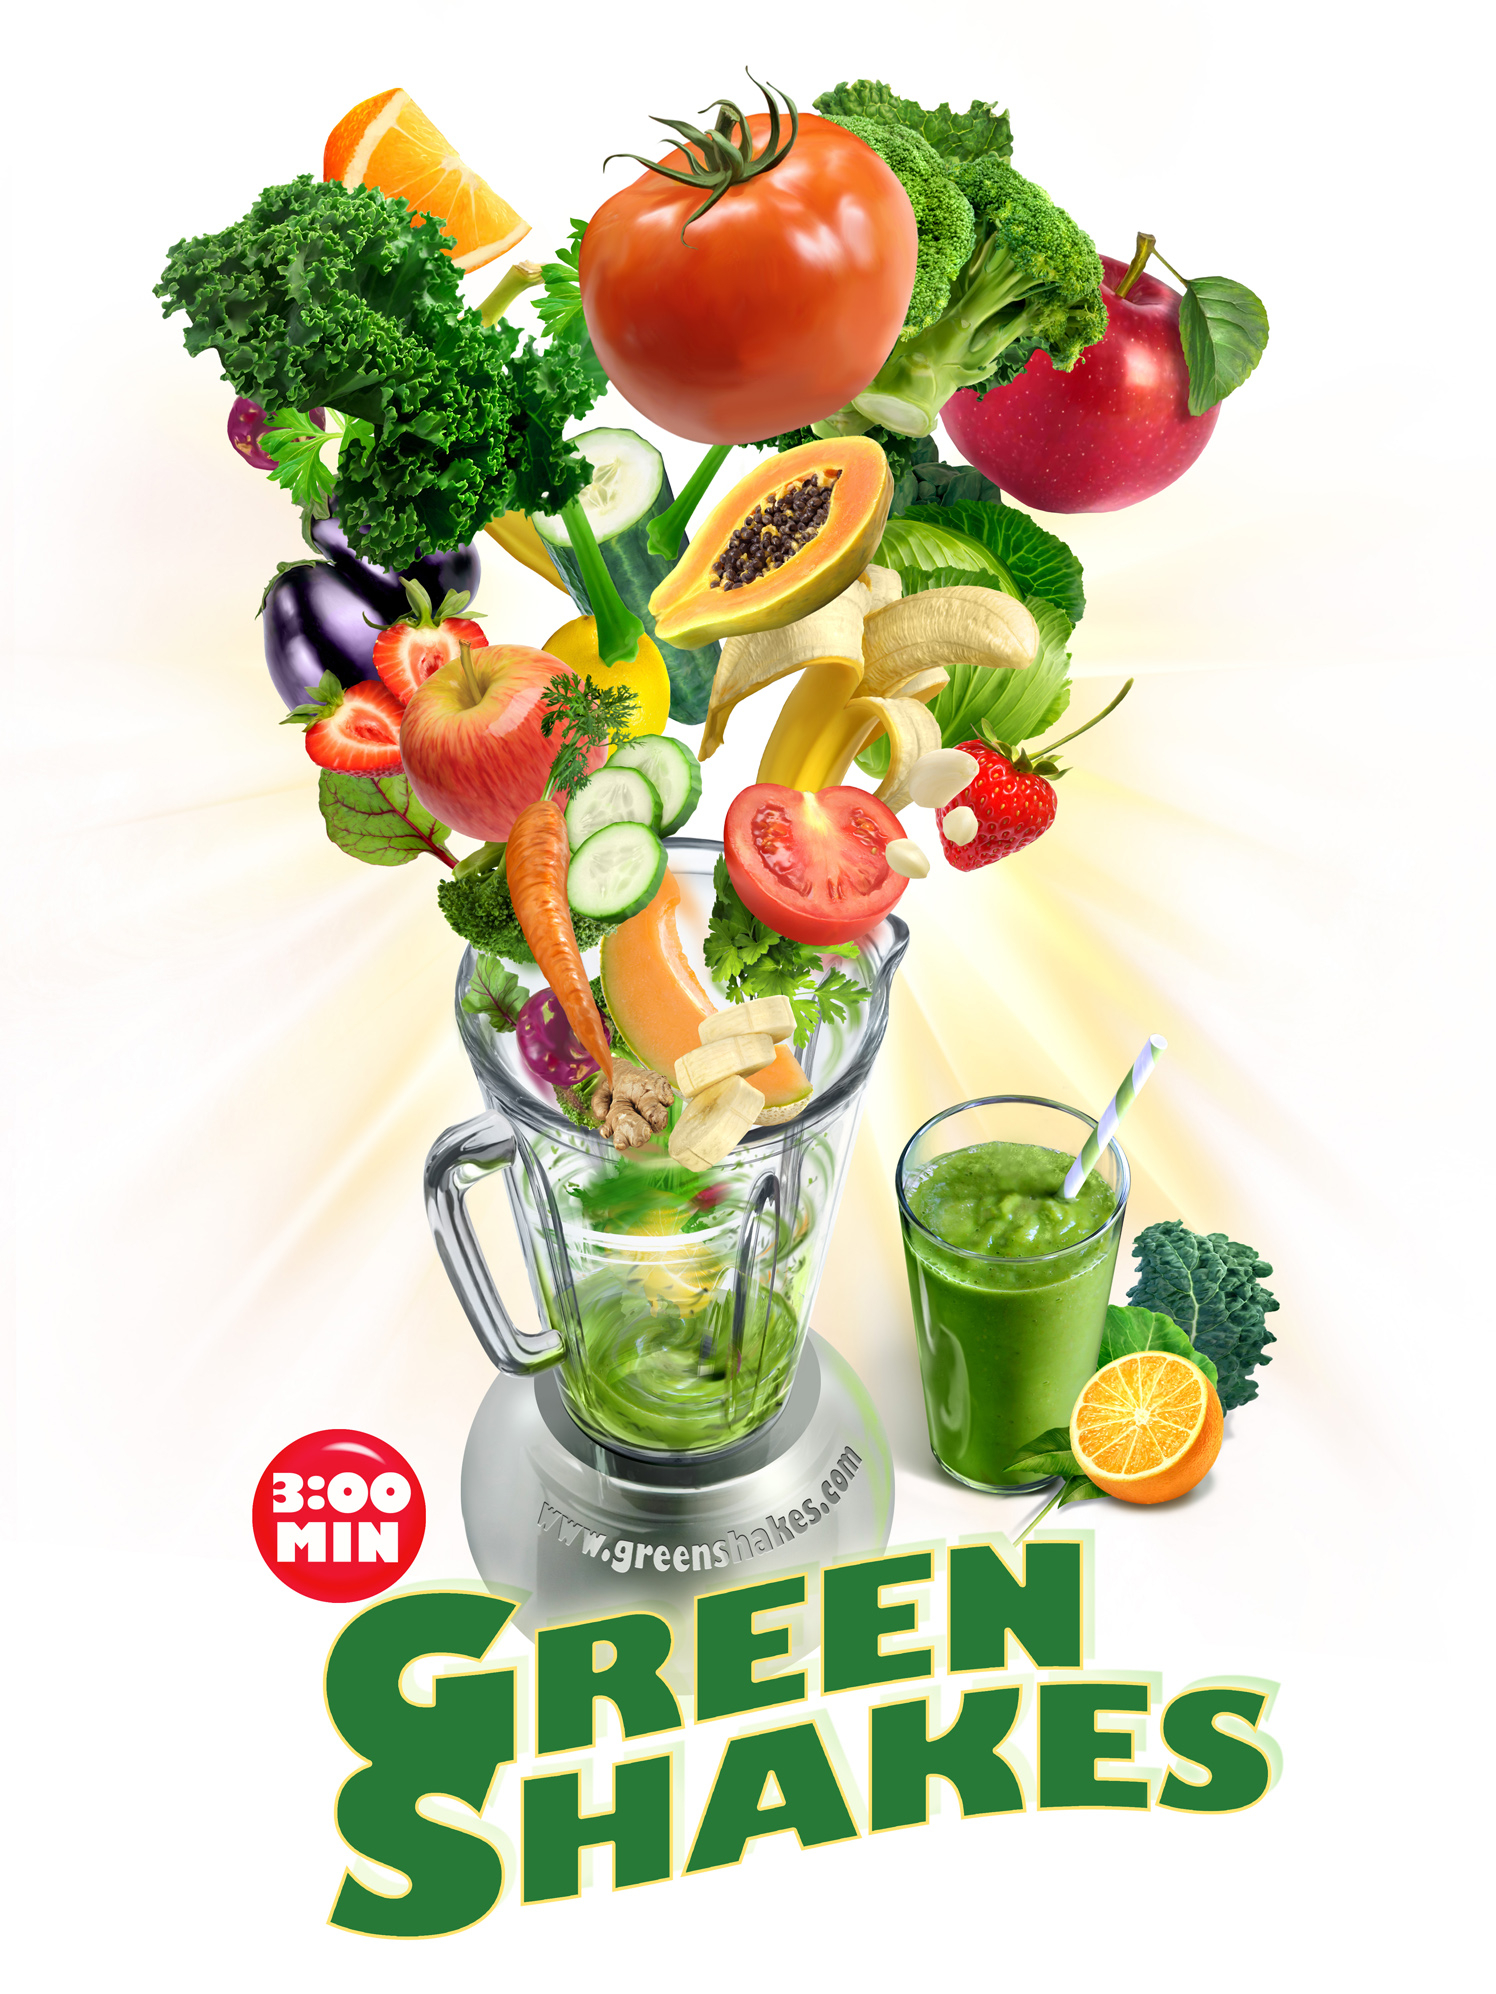 Green Shakes In 3 Minutes